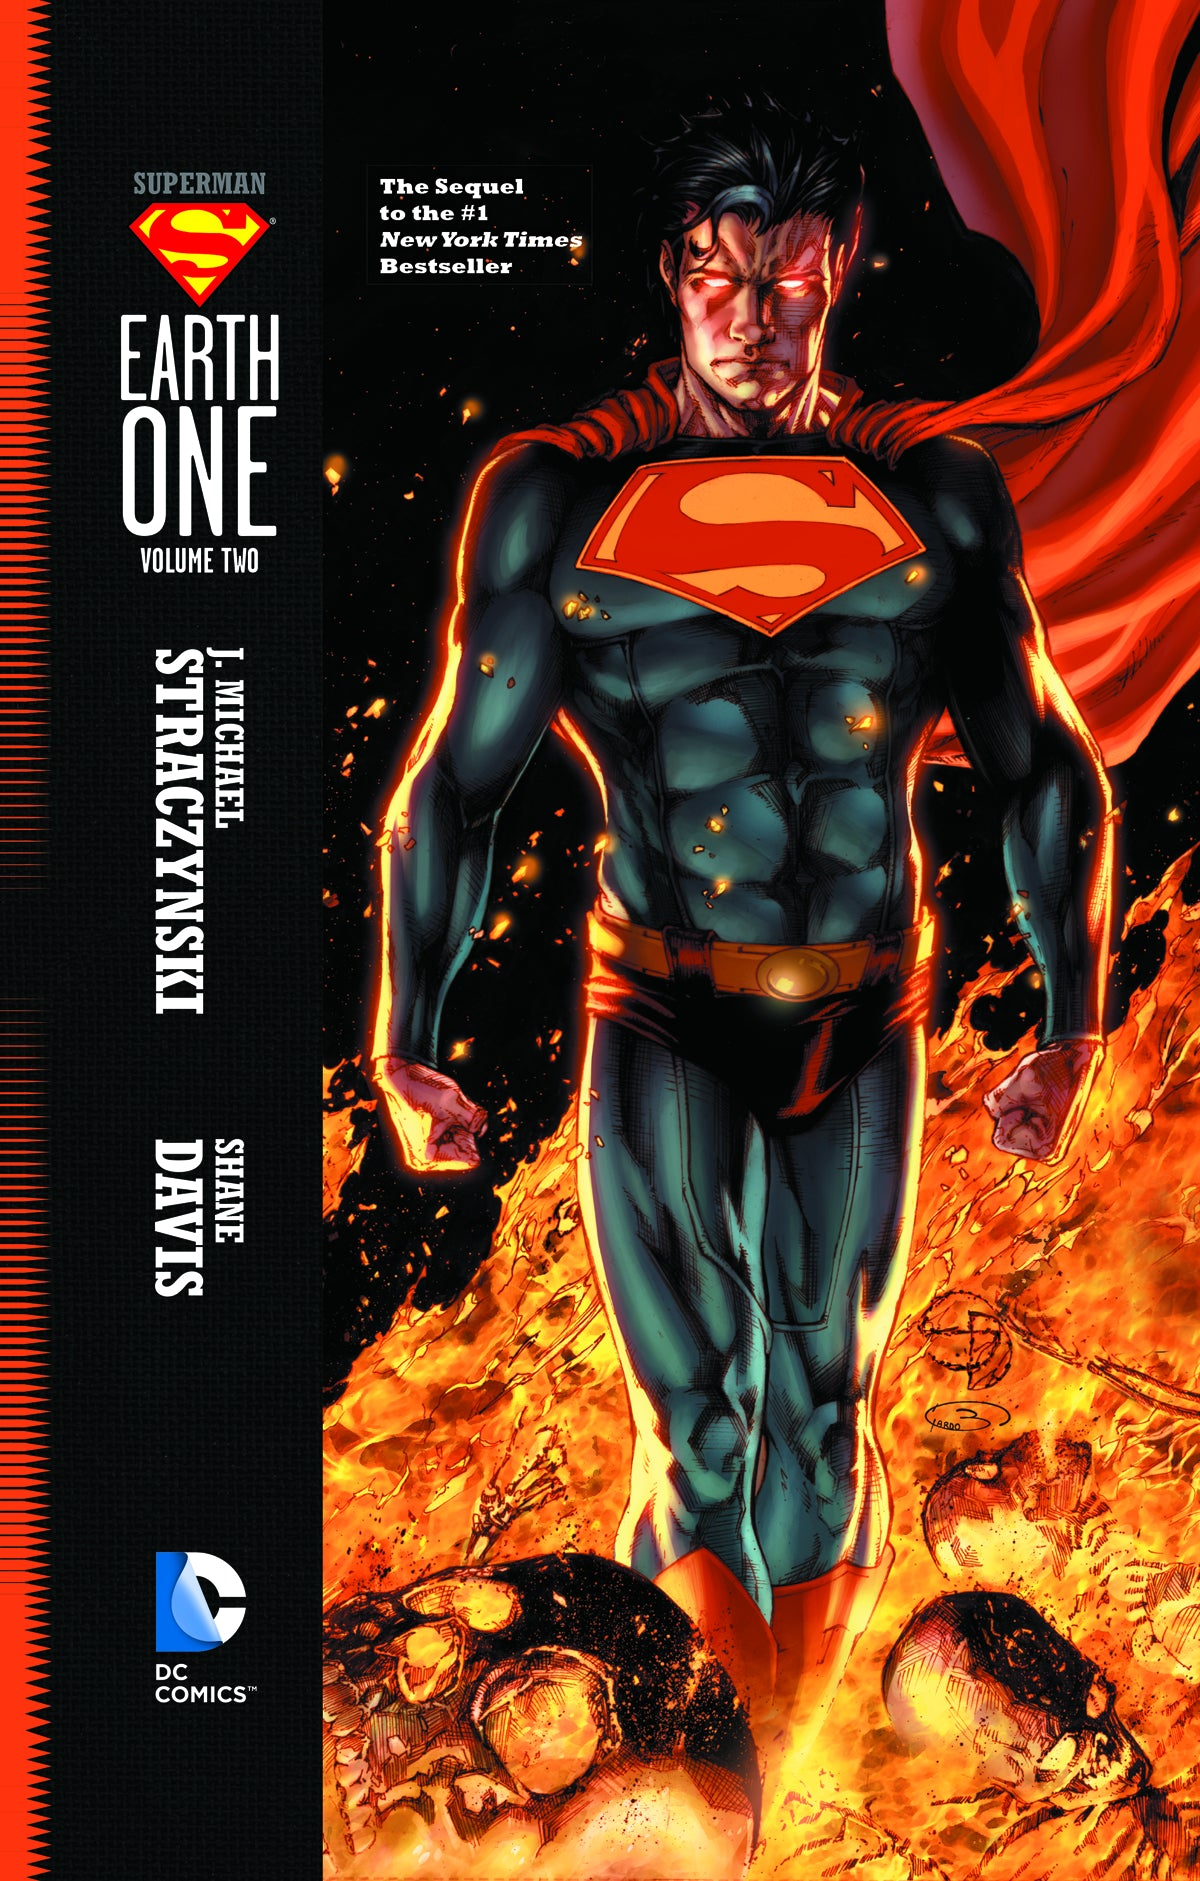 SUPERMAN EARTH ONE TP VOL 02 | Game Master's Emporium (The New GME)